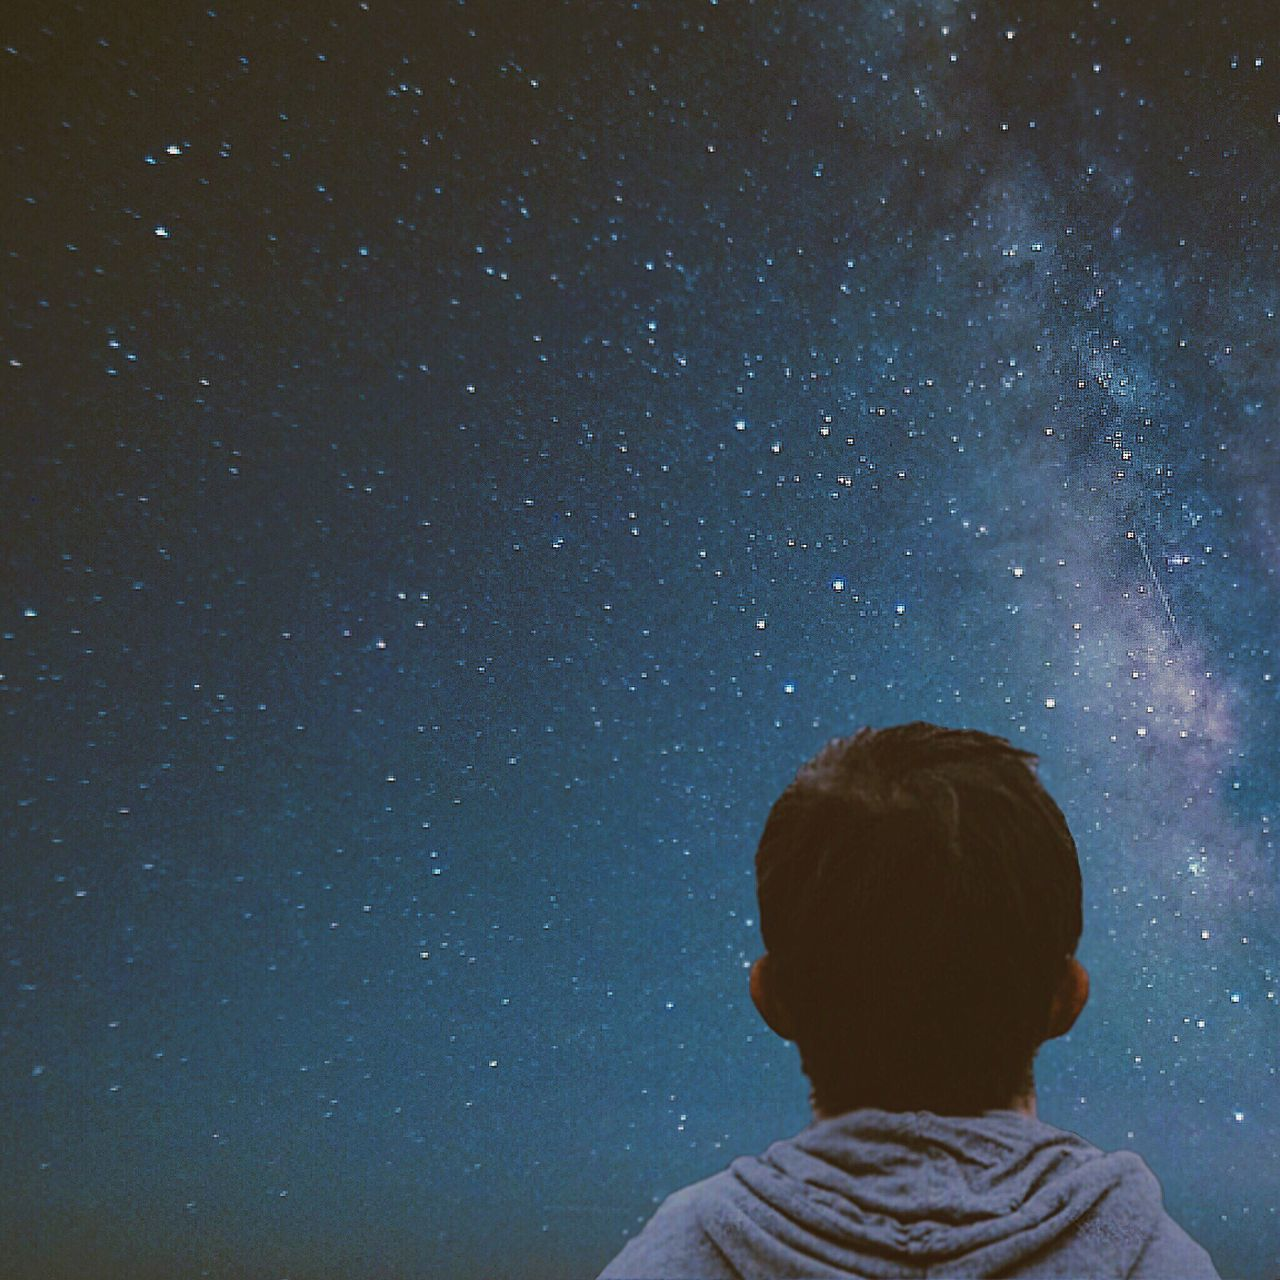 Star - Space Astronomy Night Sky Rear View Galaxy Milky Way Space And Astronomy One Person Space Scenics Constellation Beauty In Nature Star Field Real People Nature Outdoors People Young Adult Adult